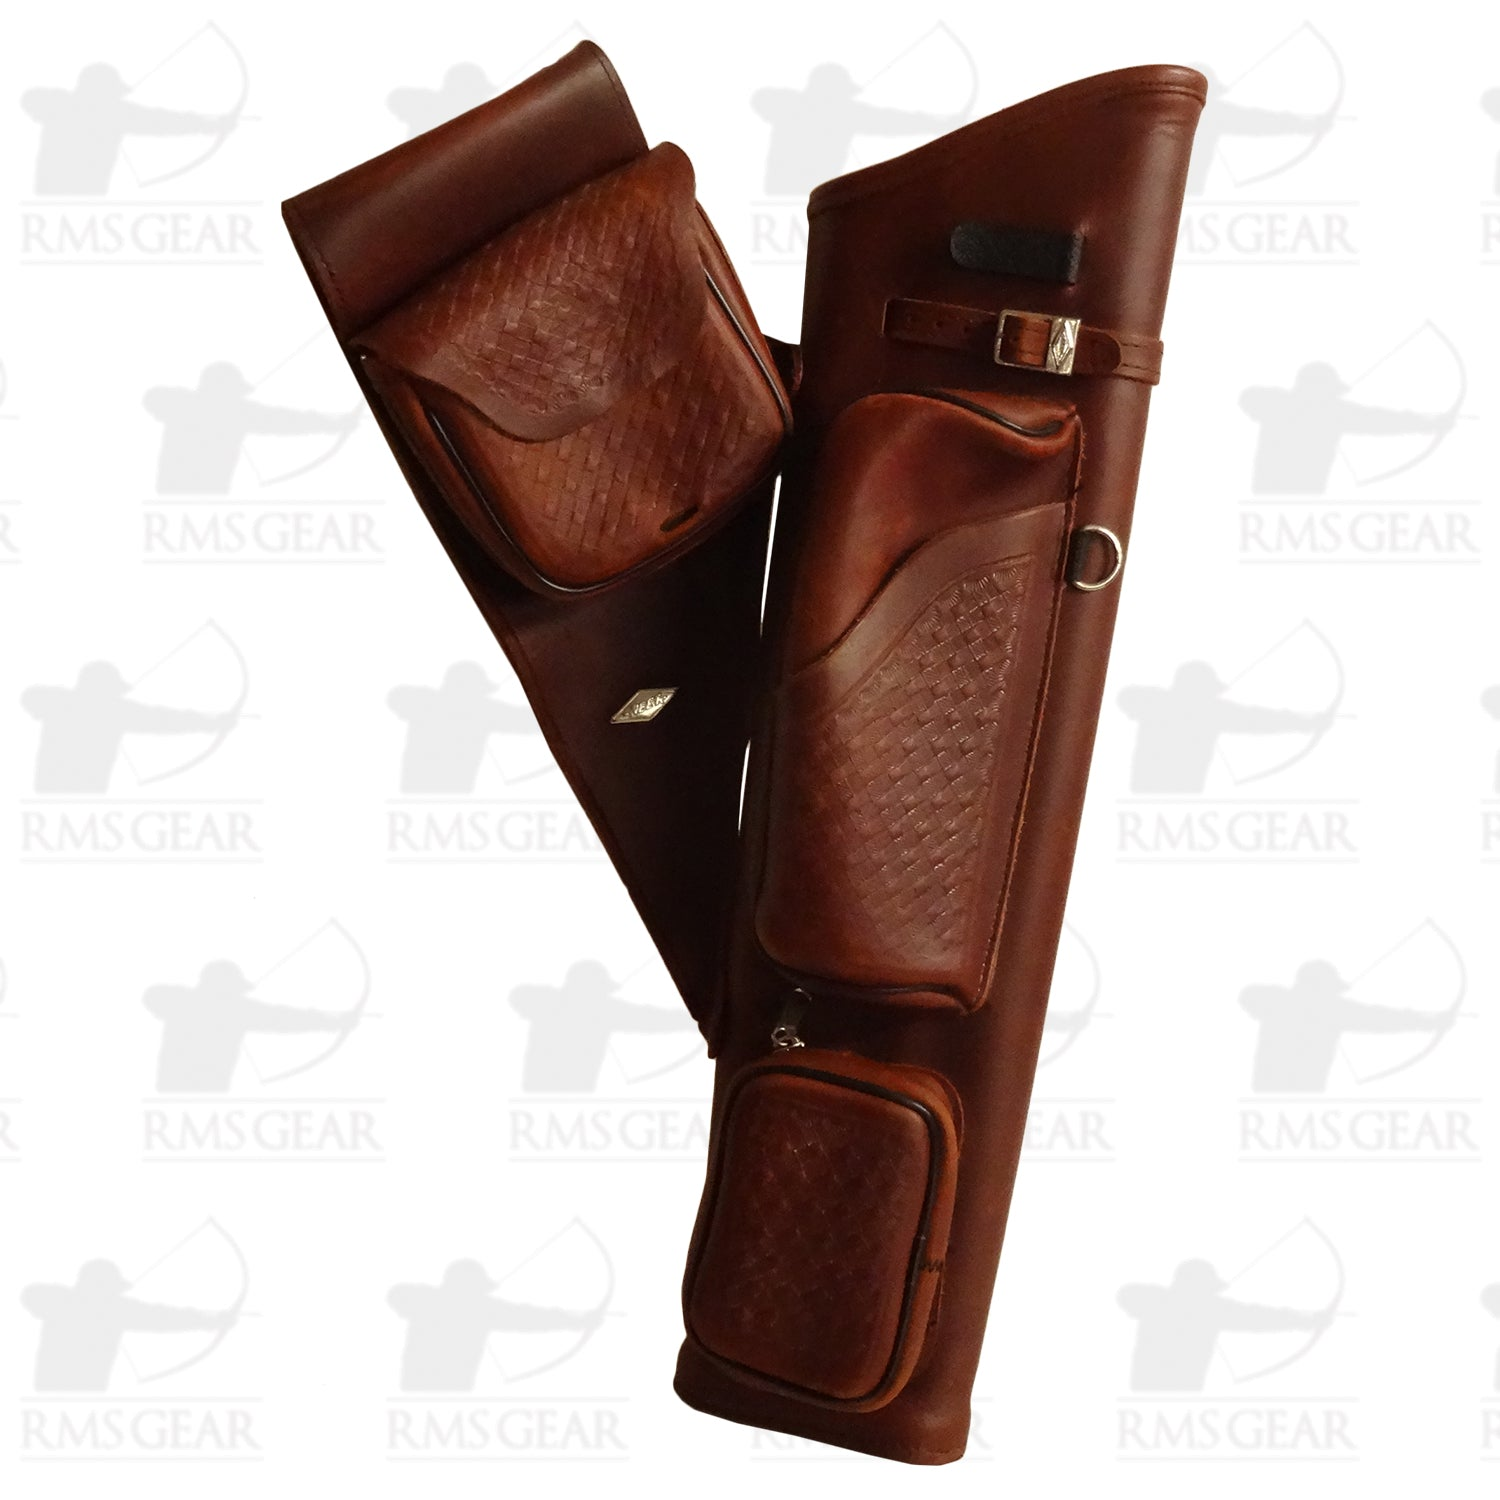 Used Neet Brown Leather Hip Quiver - USEDHQMA1